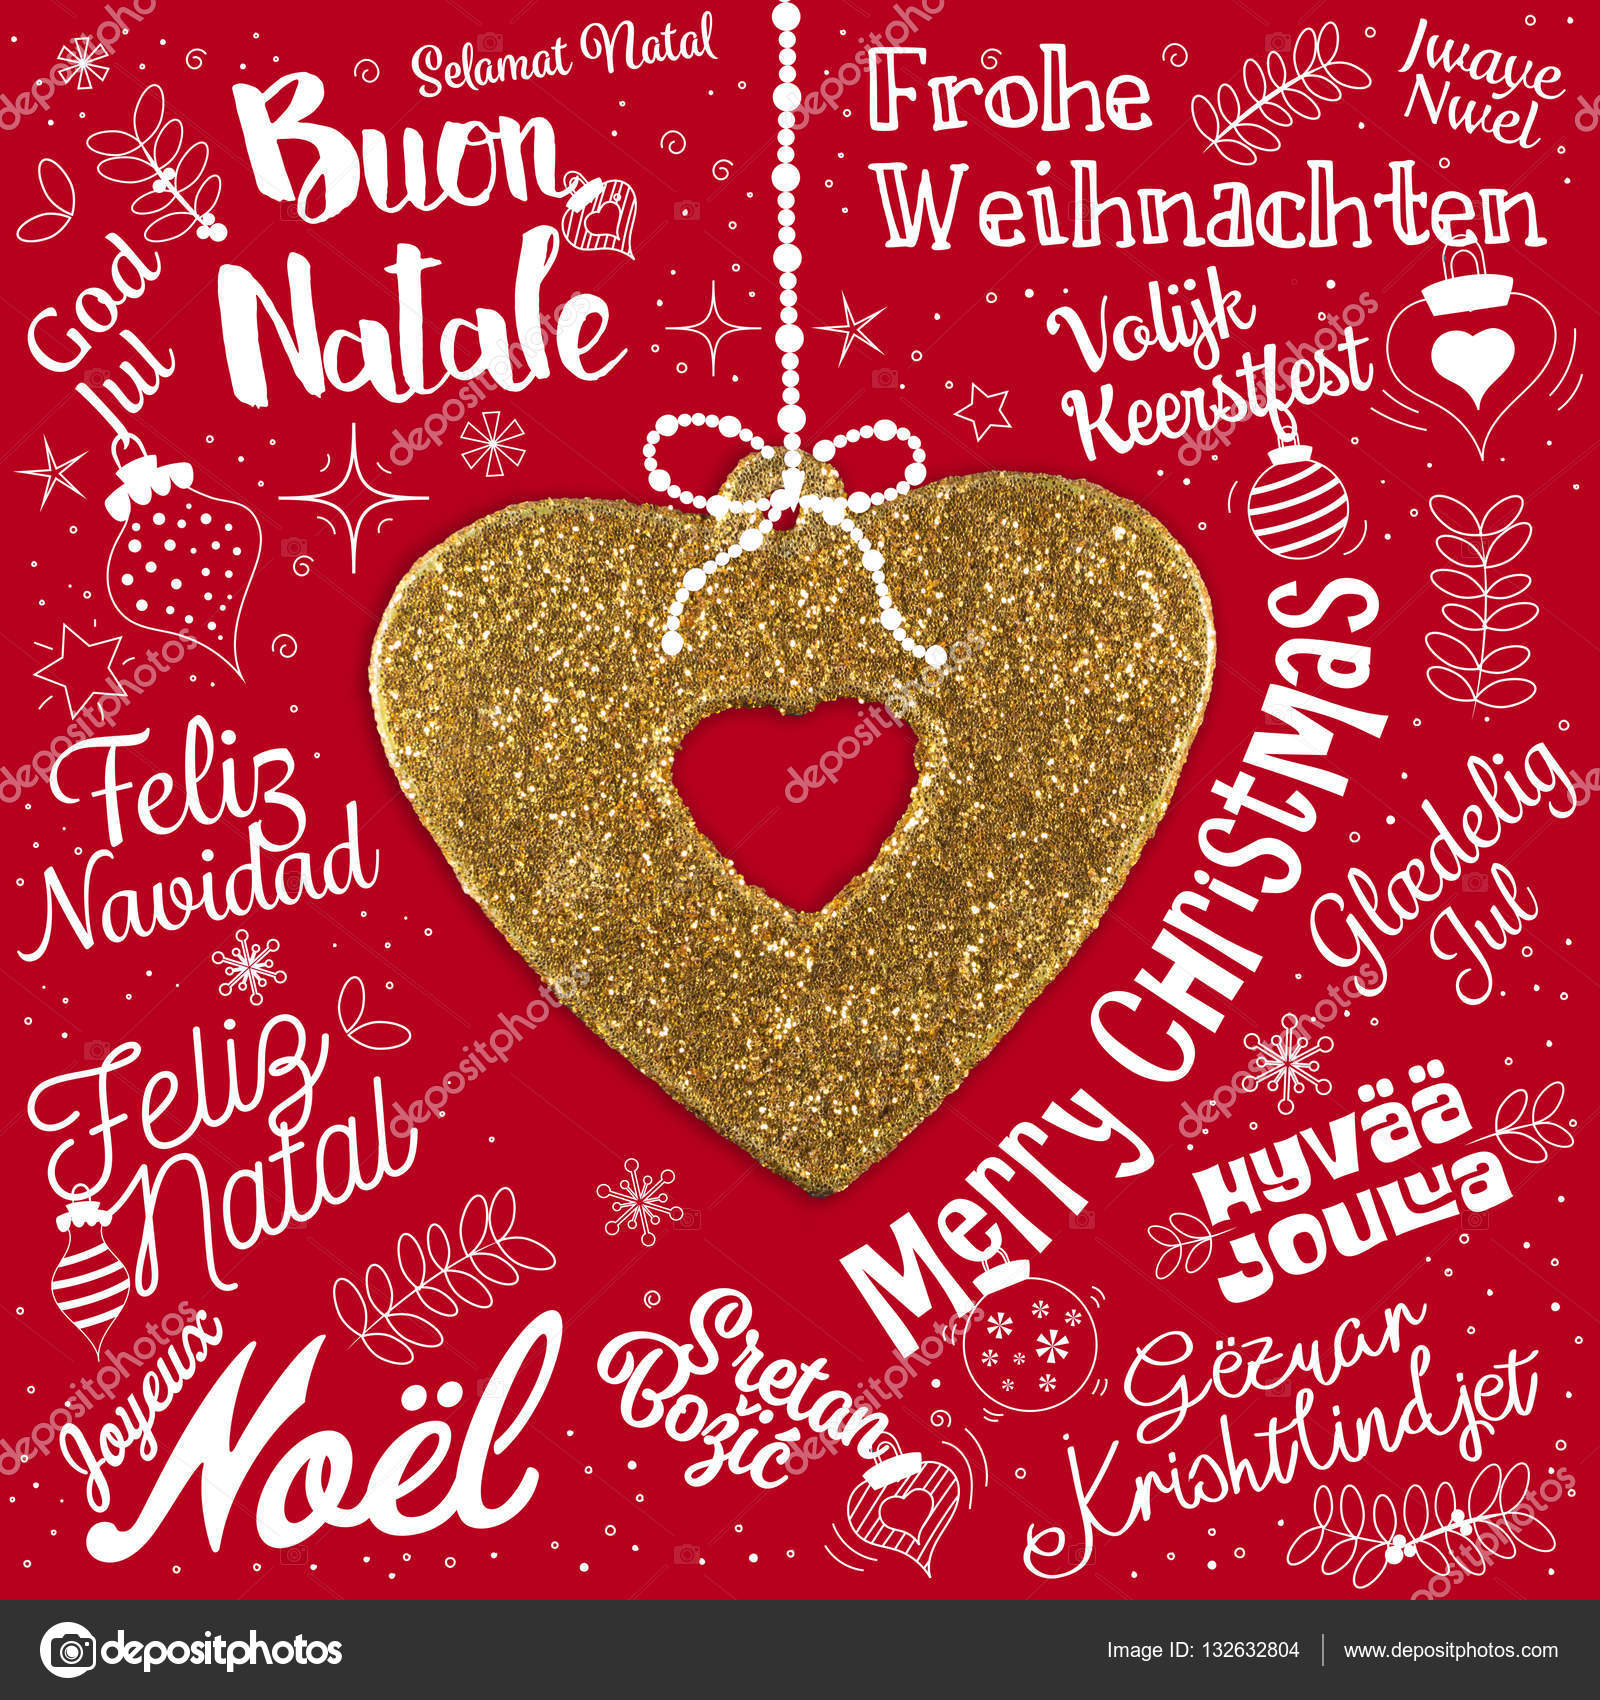 Merry christmas greetings card from world in different languages merry christmas greetings card from world in different languages stock photo m4hsunfo